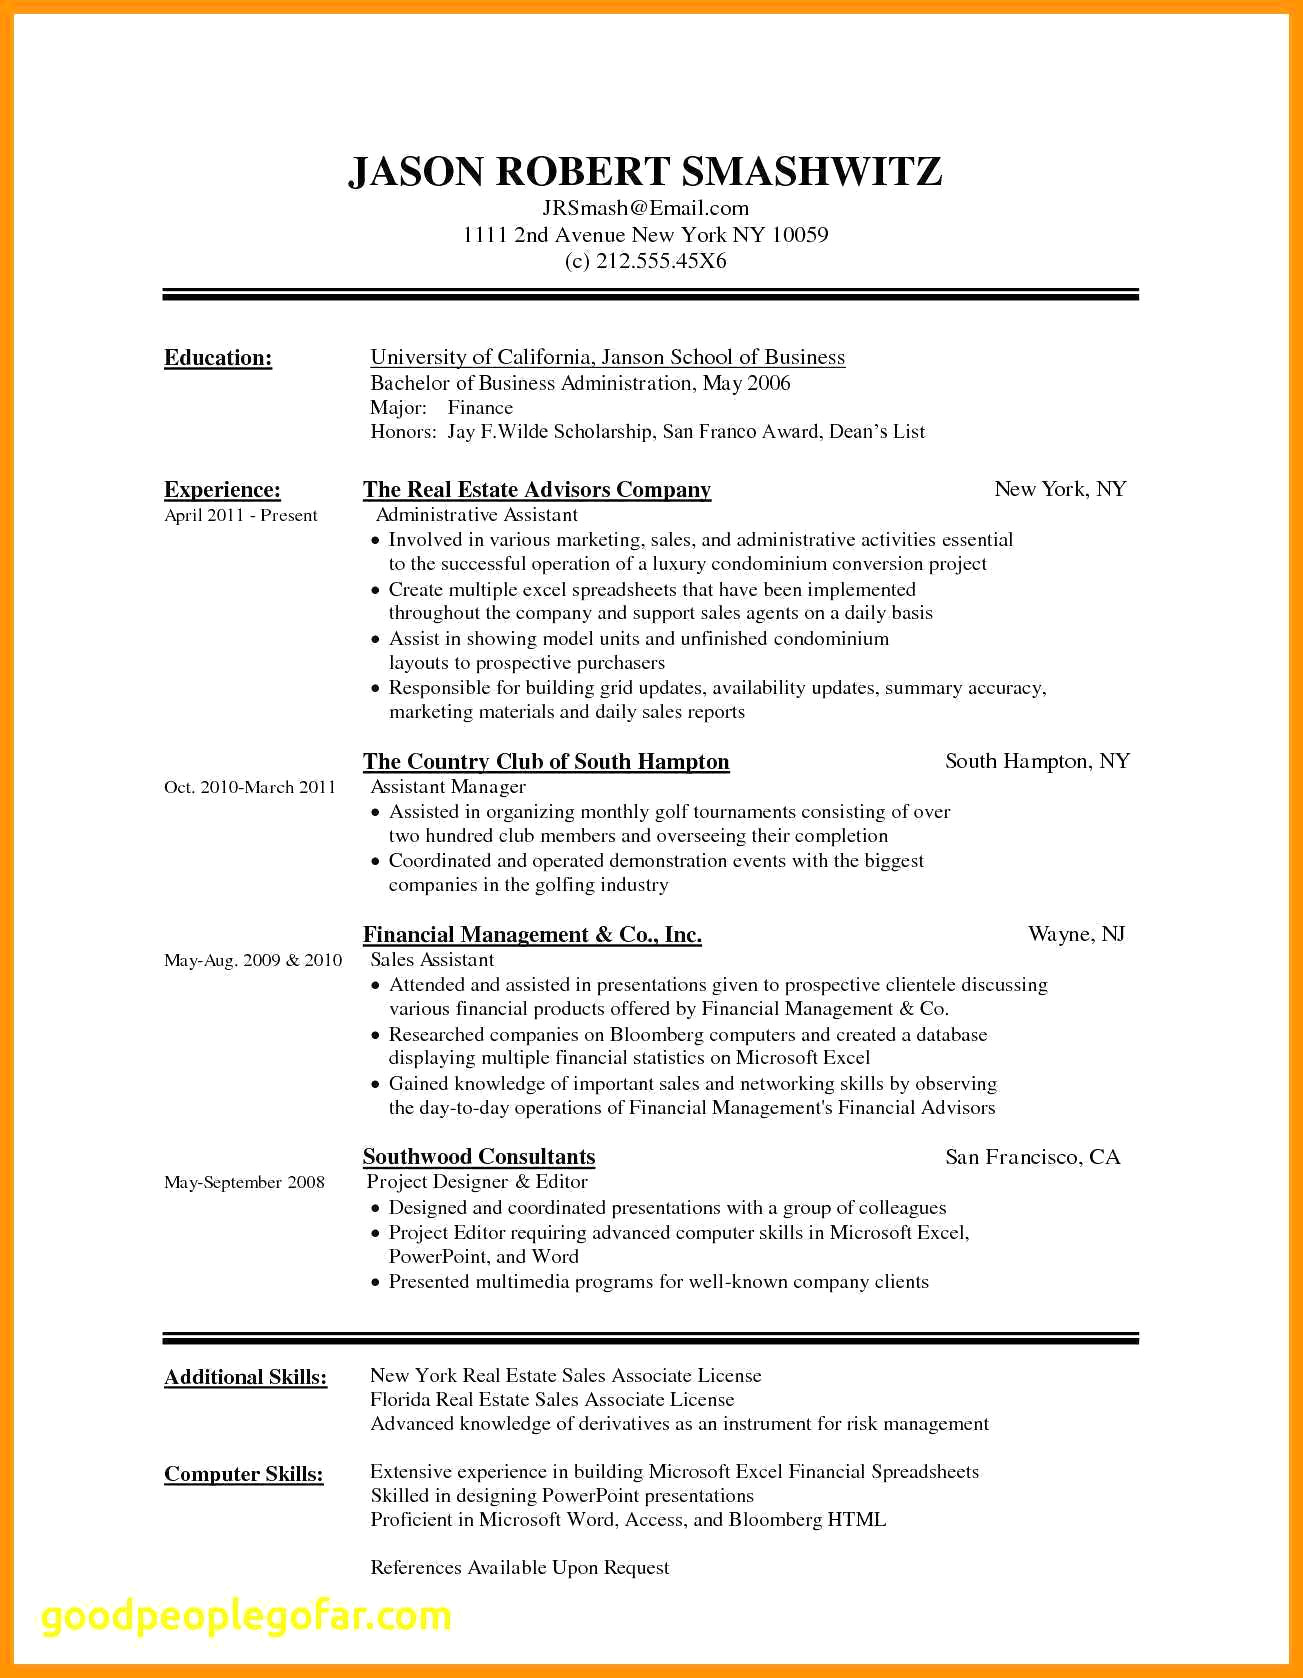 Resume Template Word Download - 56 Design Download Resume Templates Word